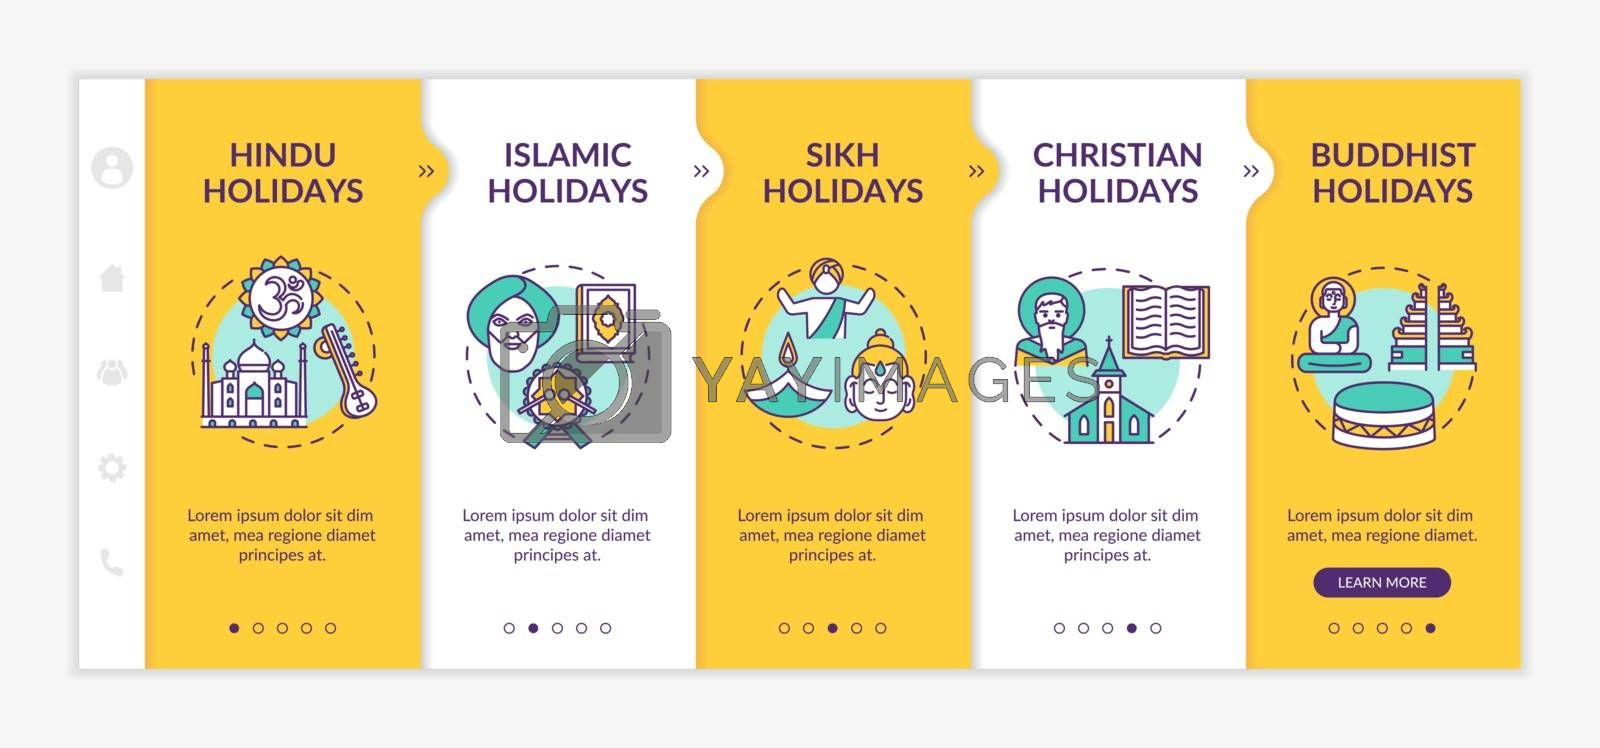 Indian religious holidays onboarding vector template. Hindu and Islamic holidays. Public holidays in India. Responsive mobile website with icons. Webpage walkthrough step screens. RGB color concept